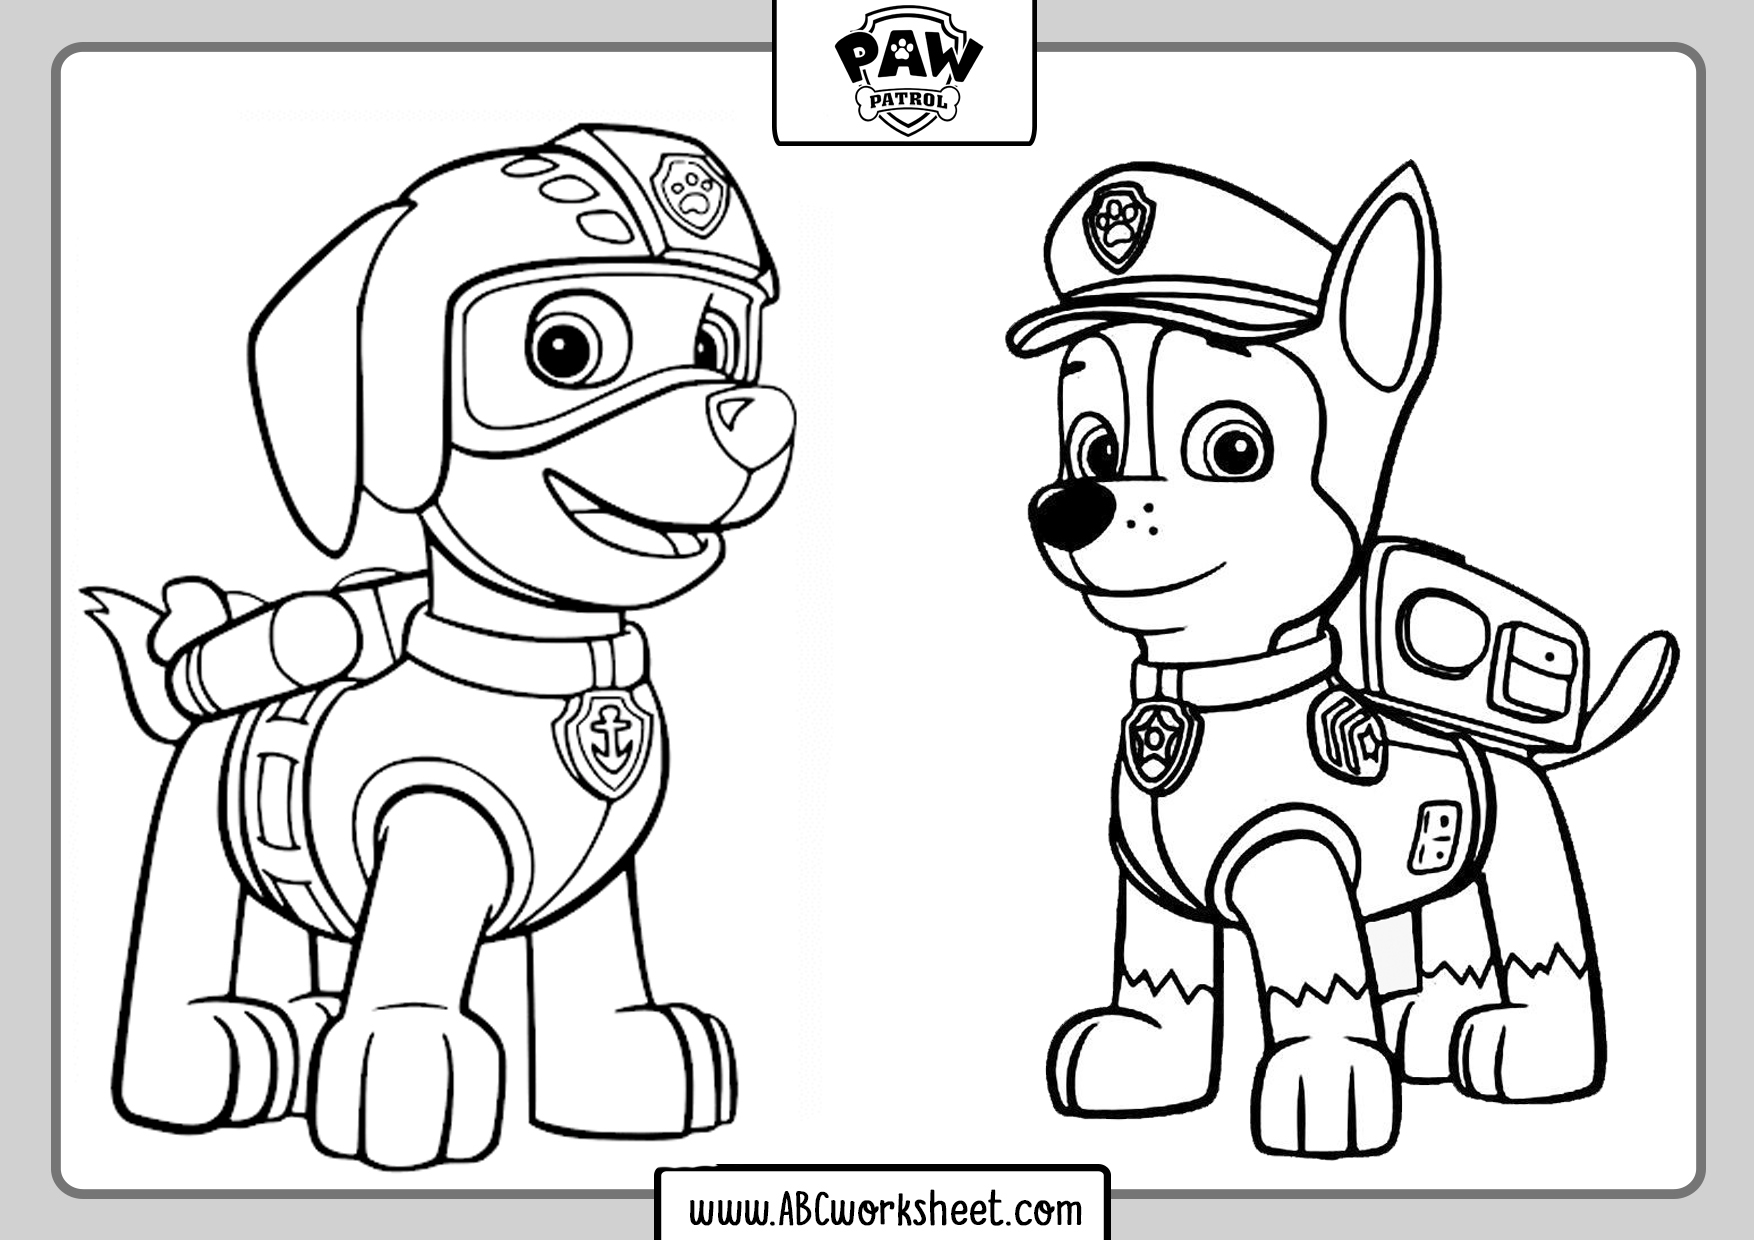 paw patrol coloring pages  abc worksheet